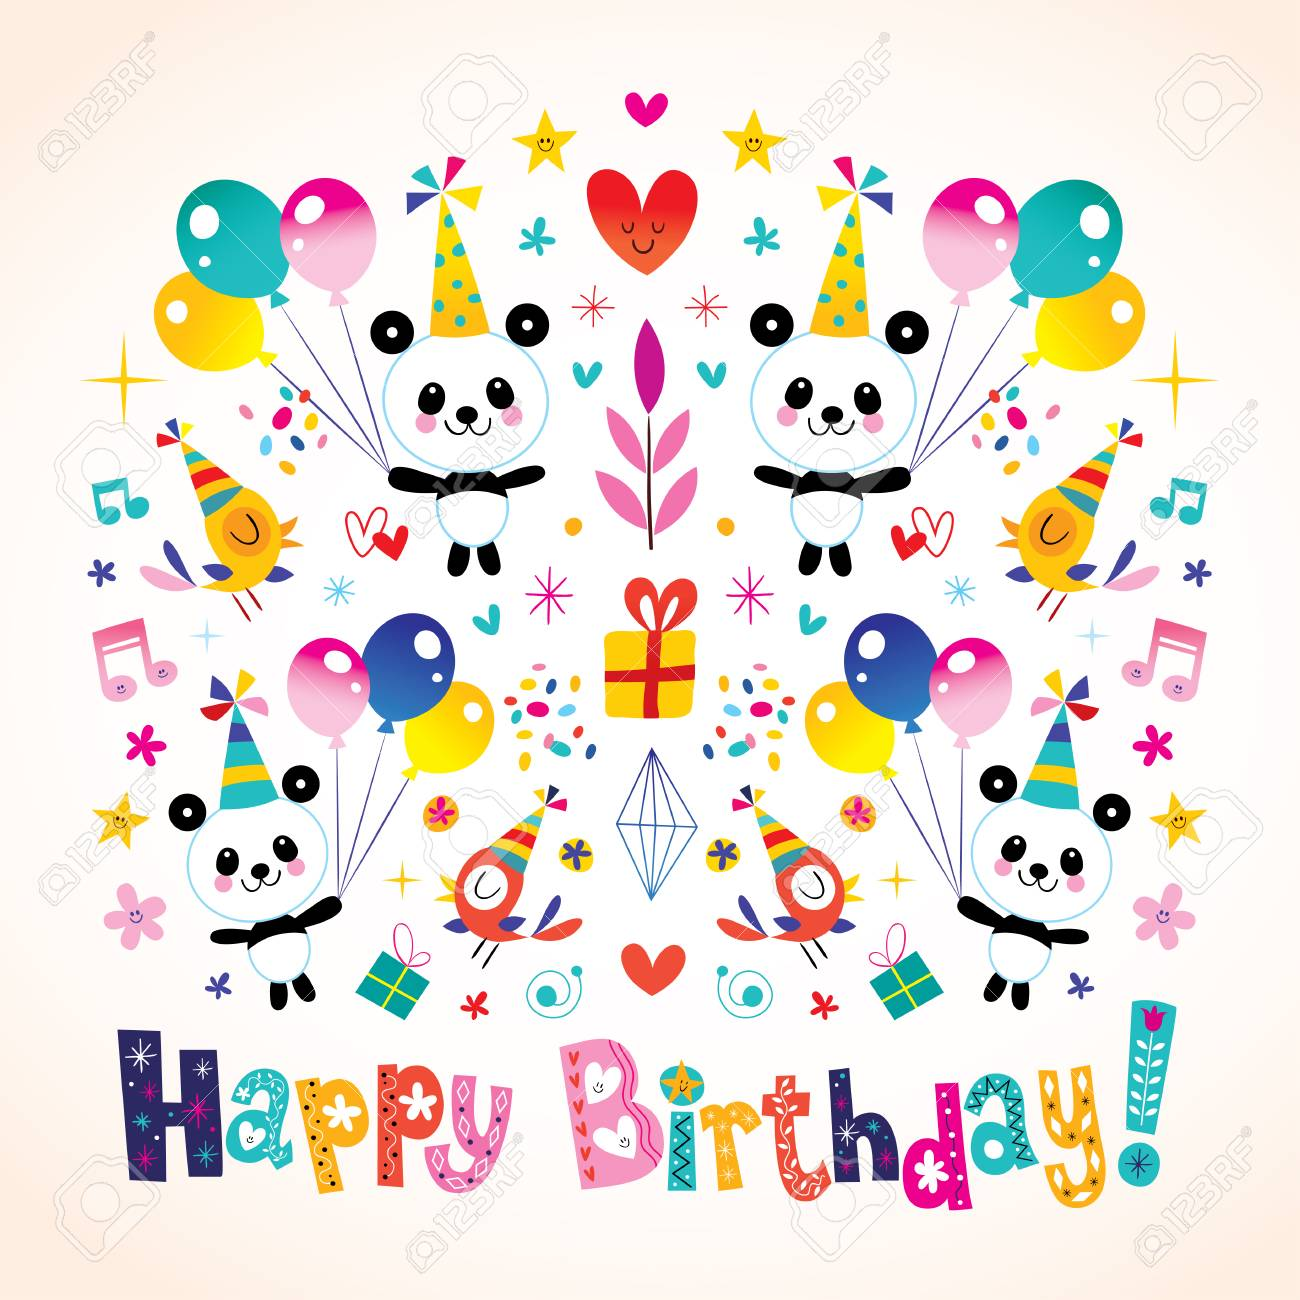 happy birthday panda clipart ; 76878557-happy-birthday-greeting-card-with-cute-panda-bears